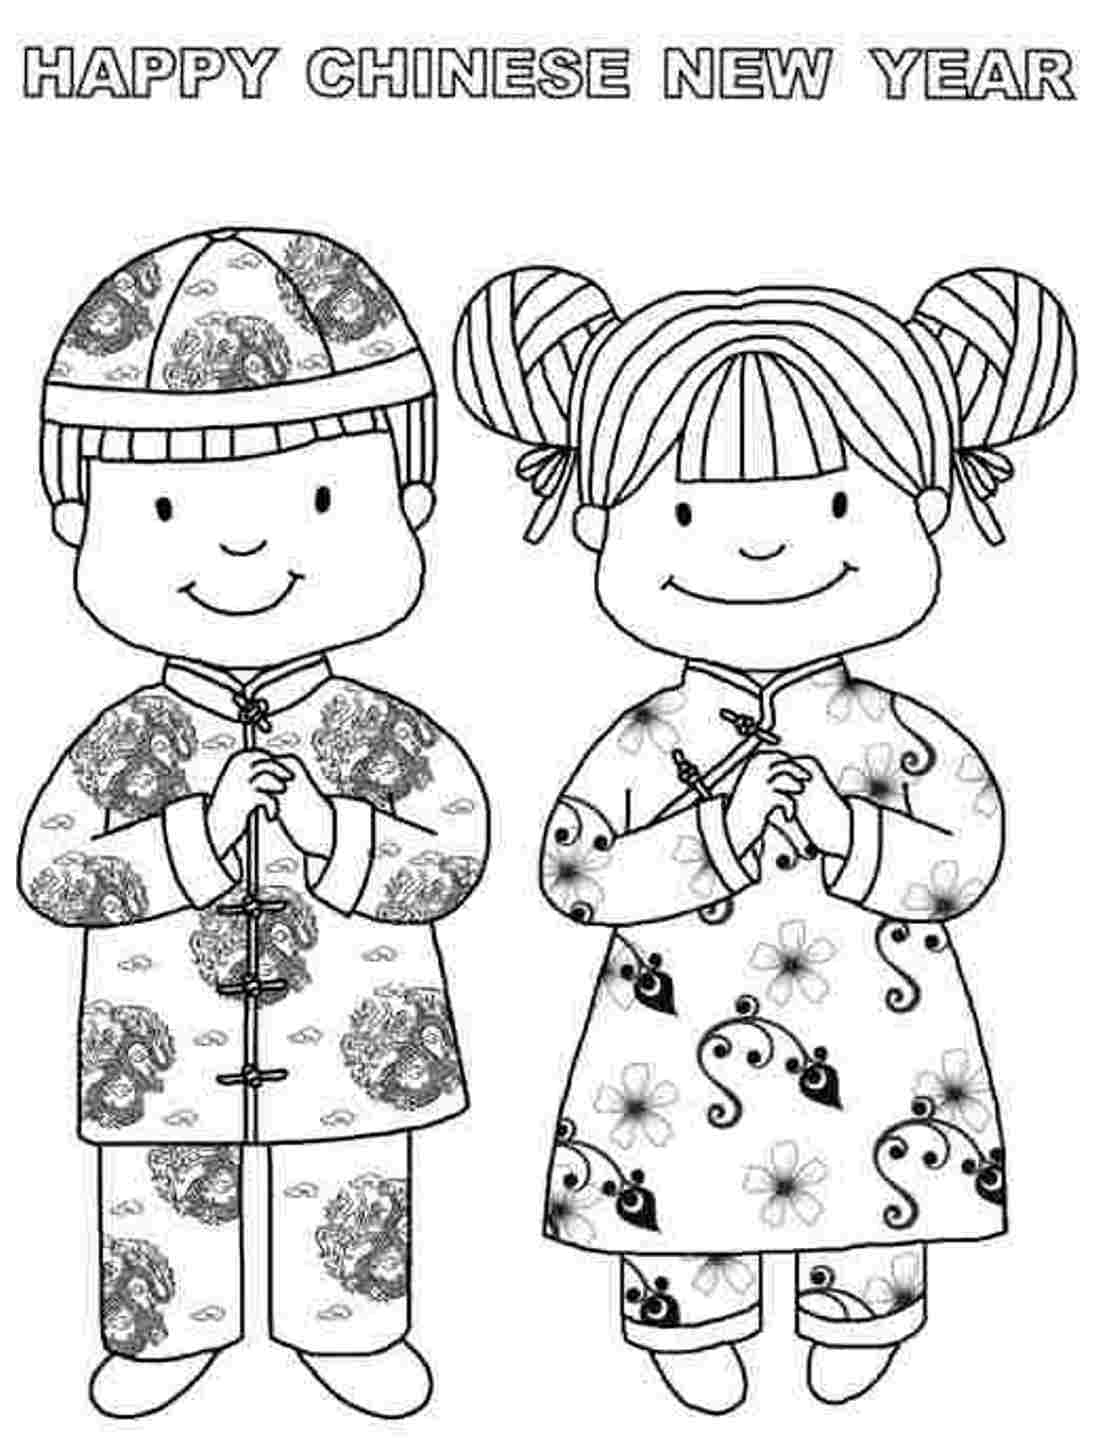 chinese zodiac coloring pages to print out | New year coloring ... | 1443x1095